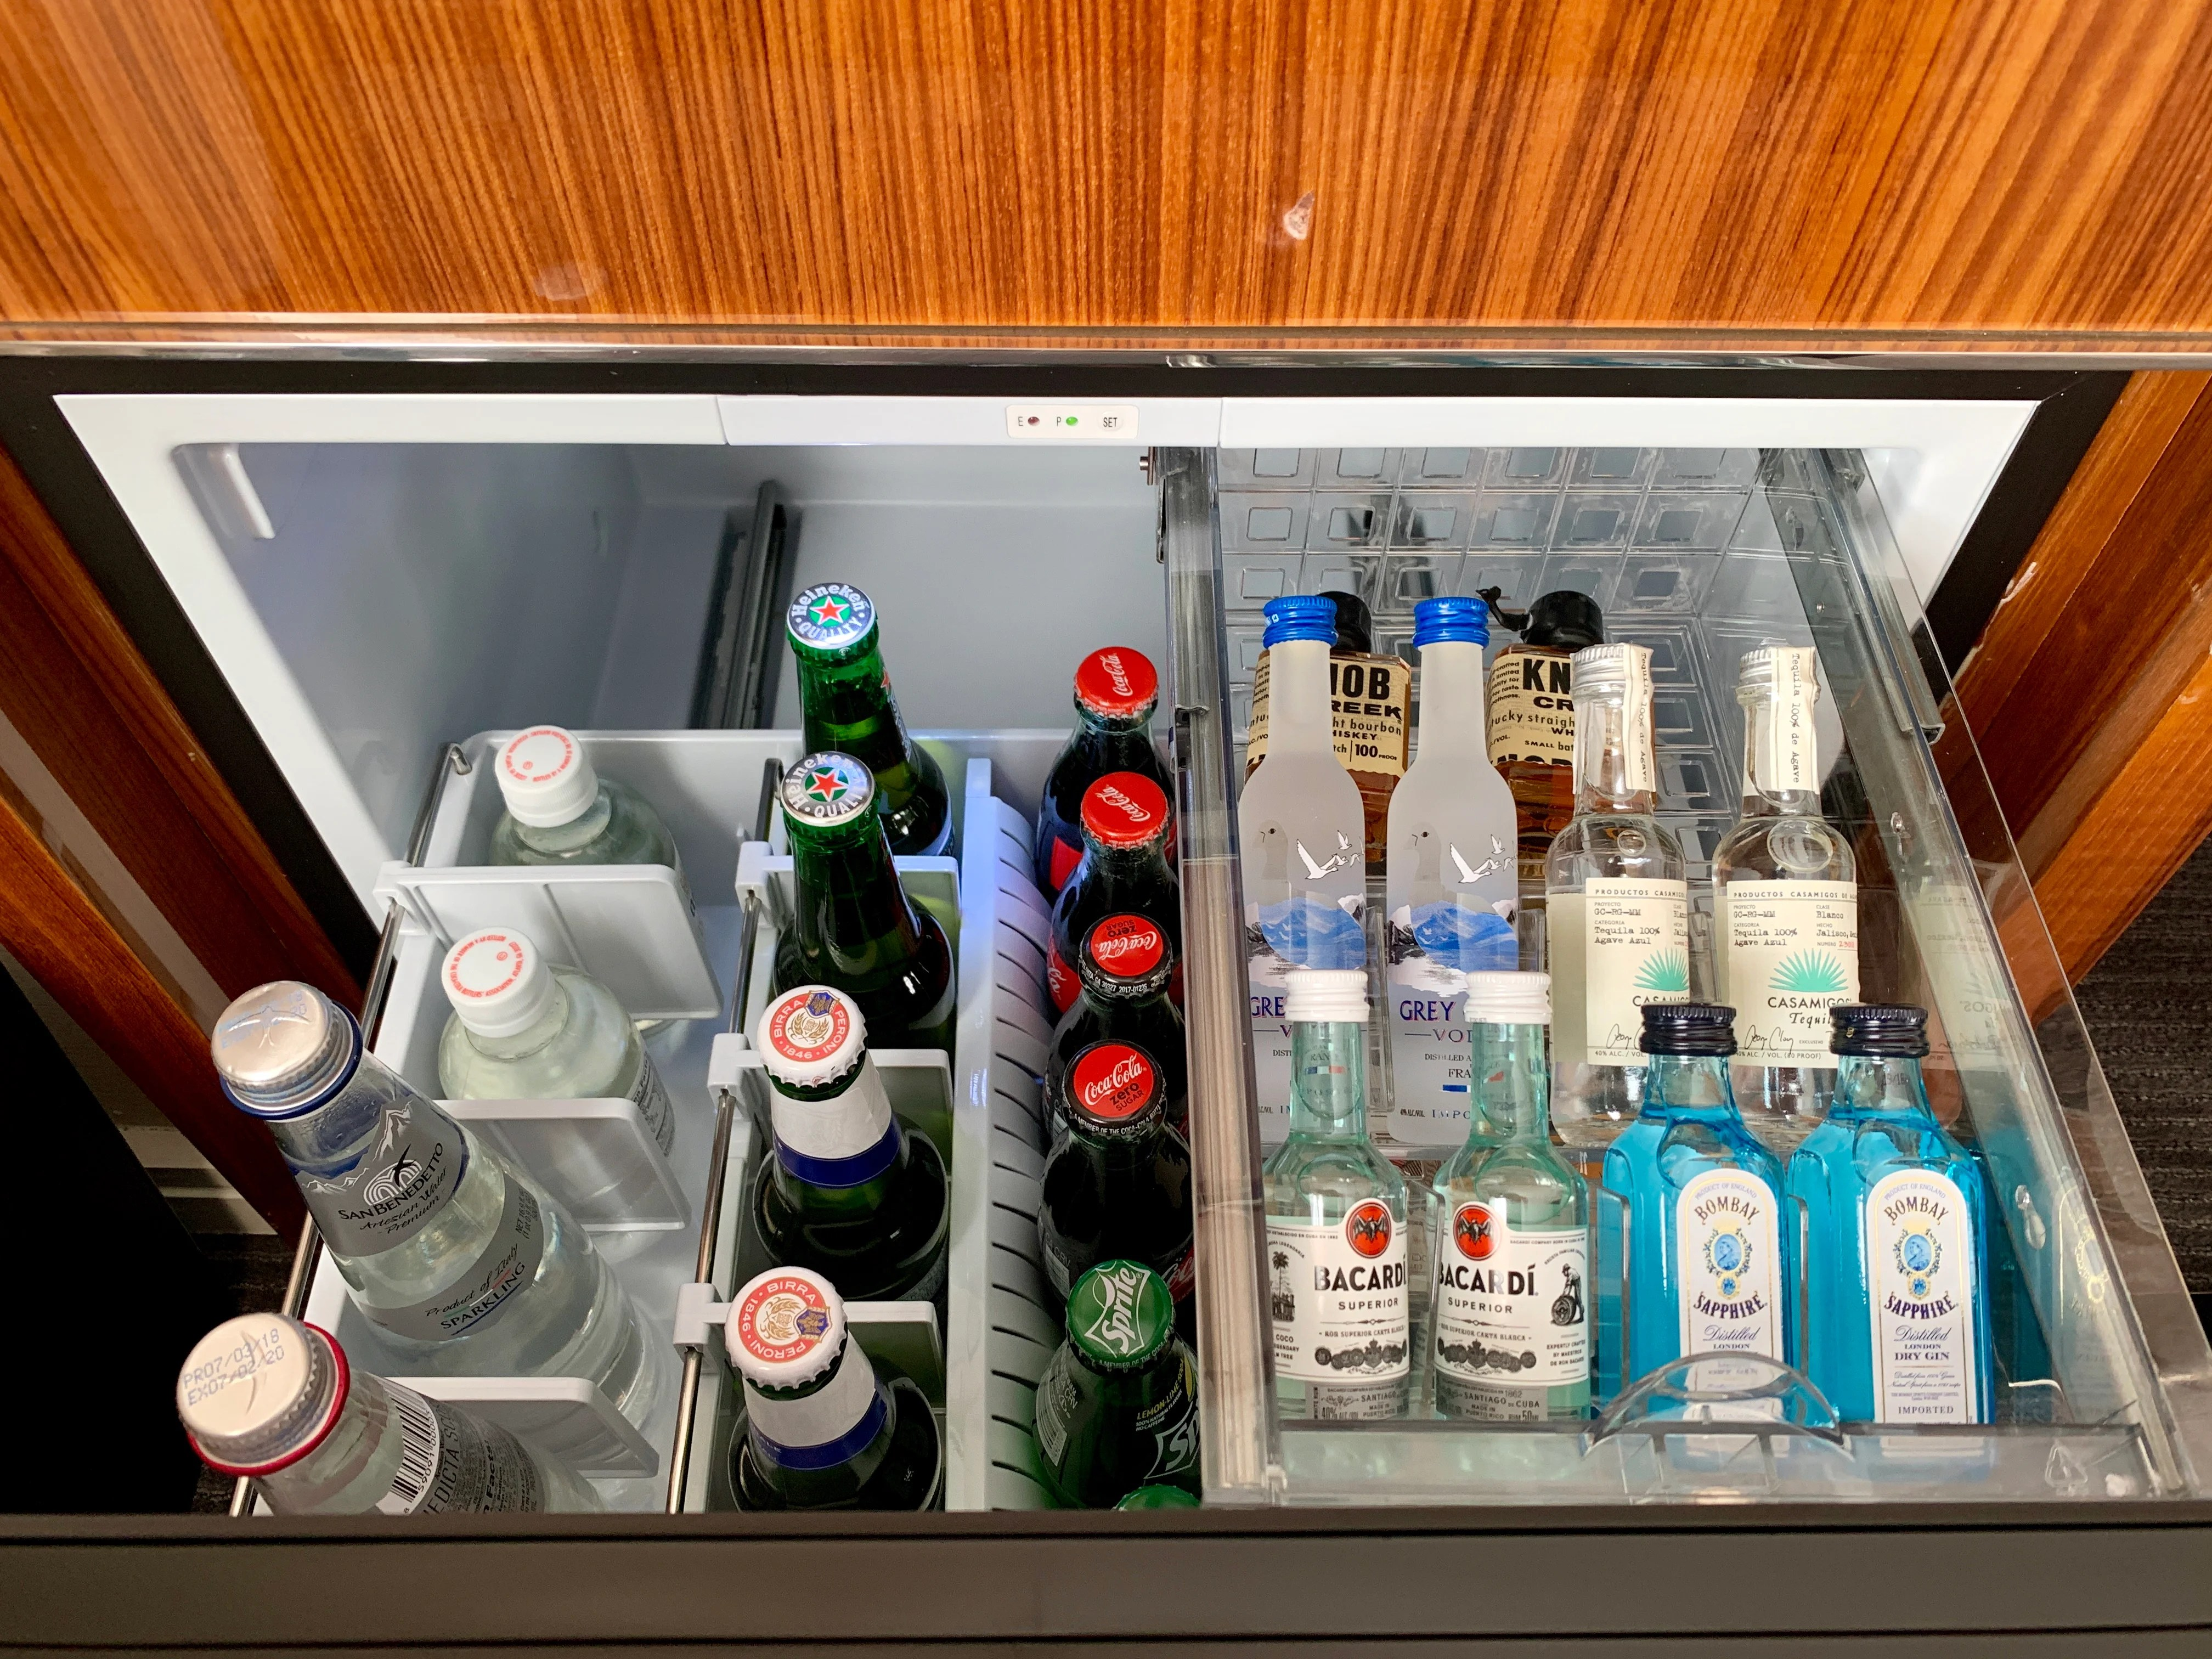 Erroneous charges, reused bottles and expired drinks: TPG readers share their minibar horror stories